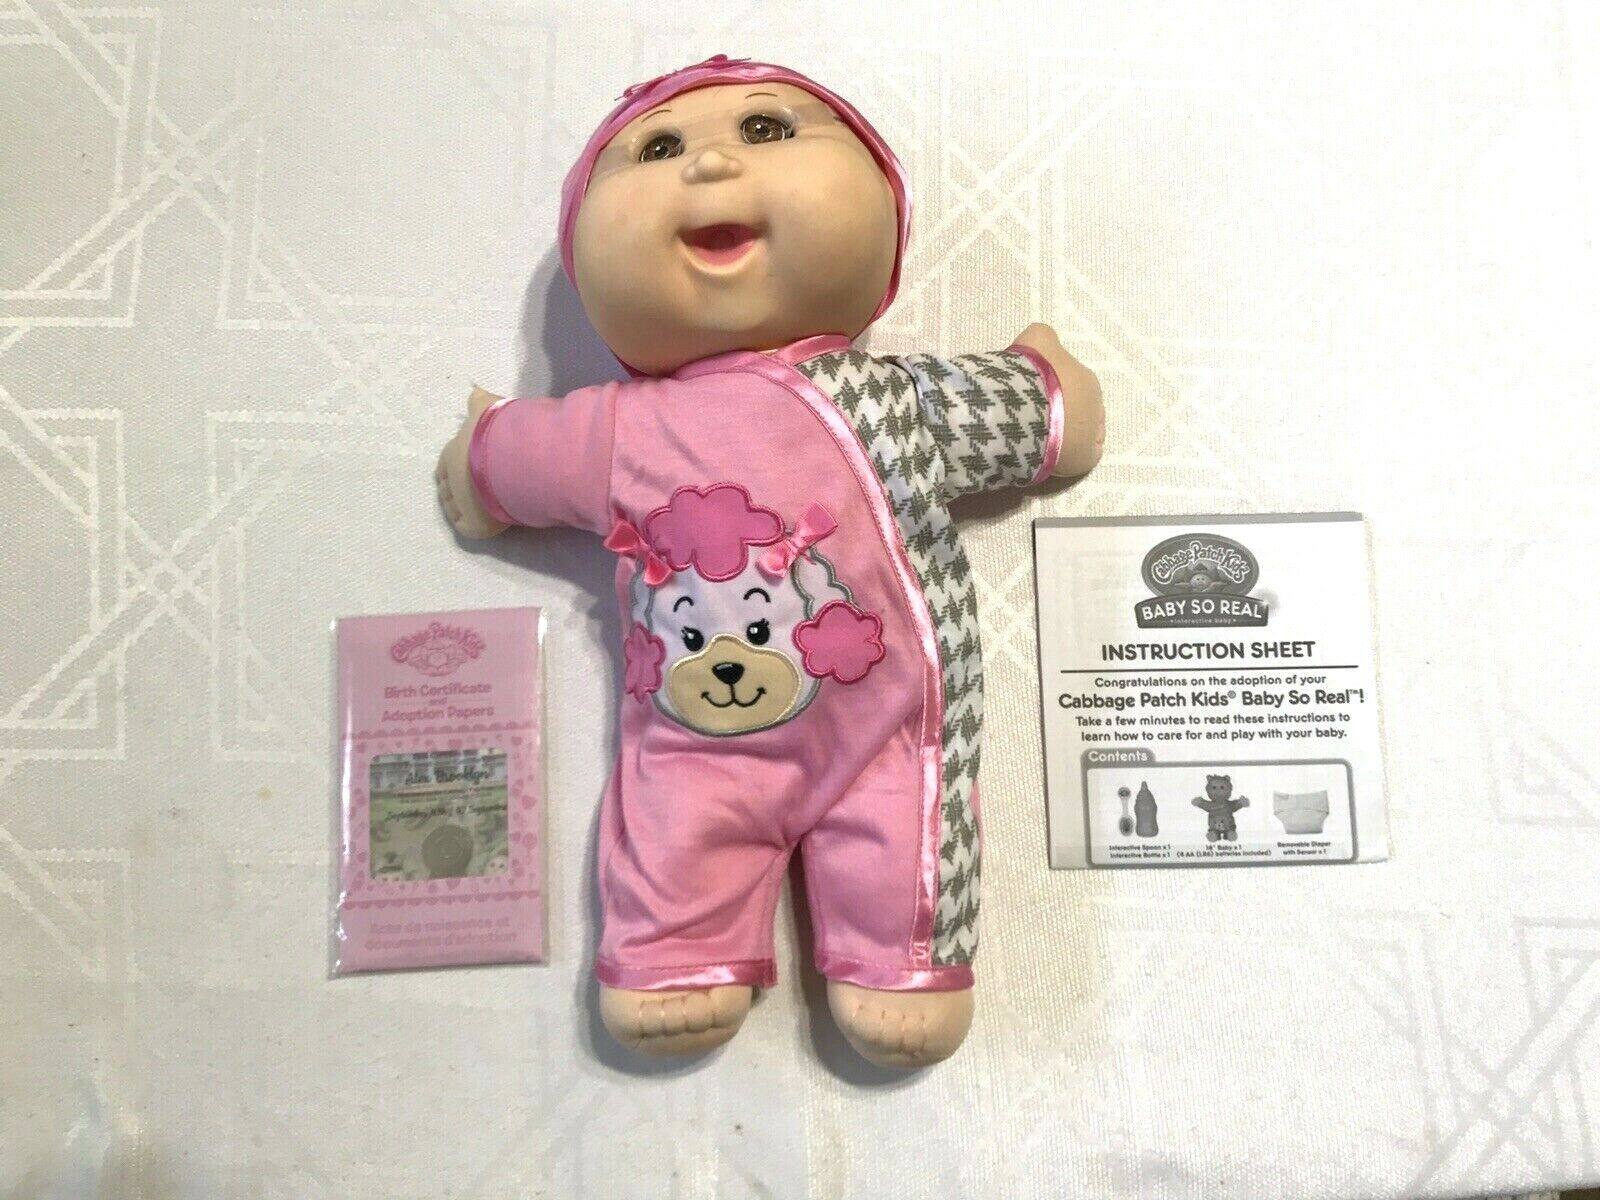 2016 Cabbage Patch Kids Baby so Real Interactive Baby-kristen Magnolia-new  for sale online | eBay